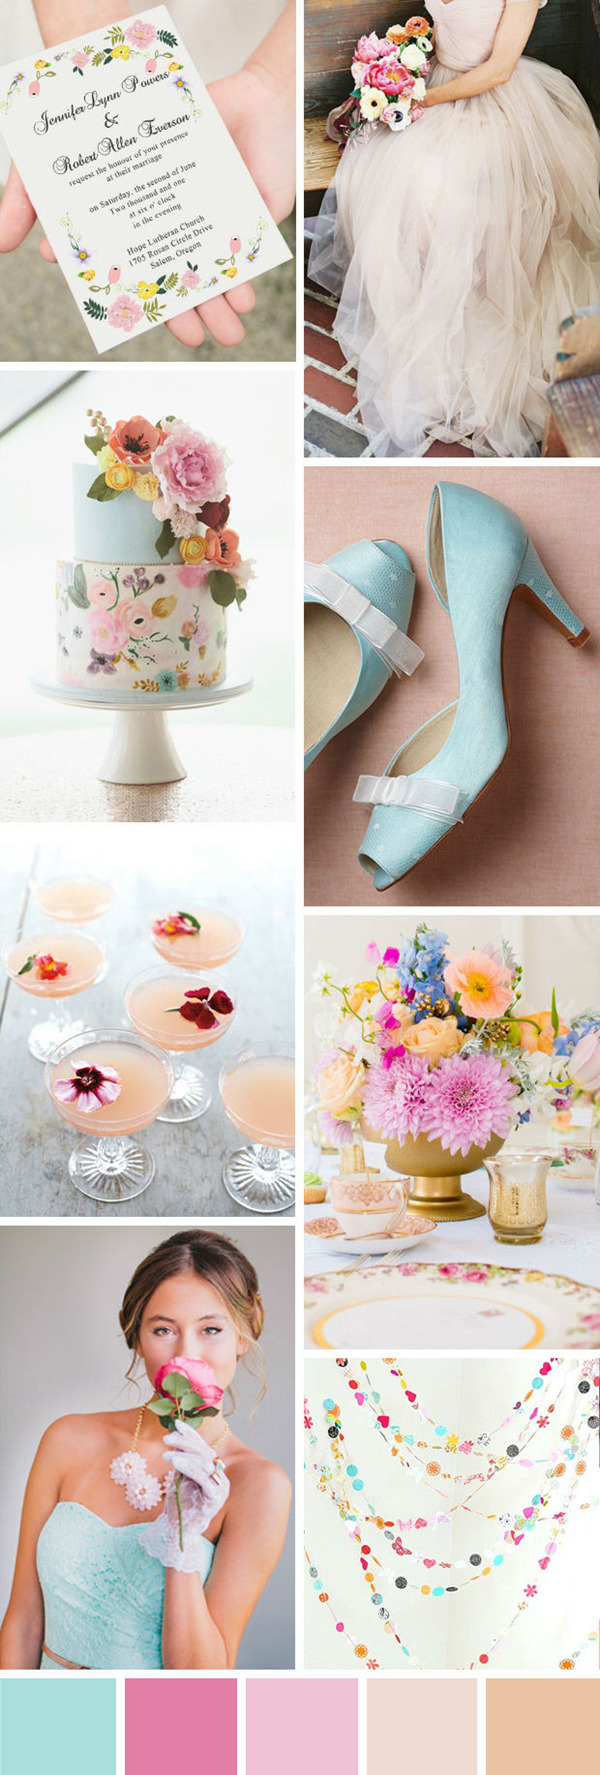 seven wonderful wedding color ideas in shades of pink